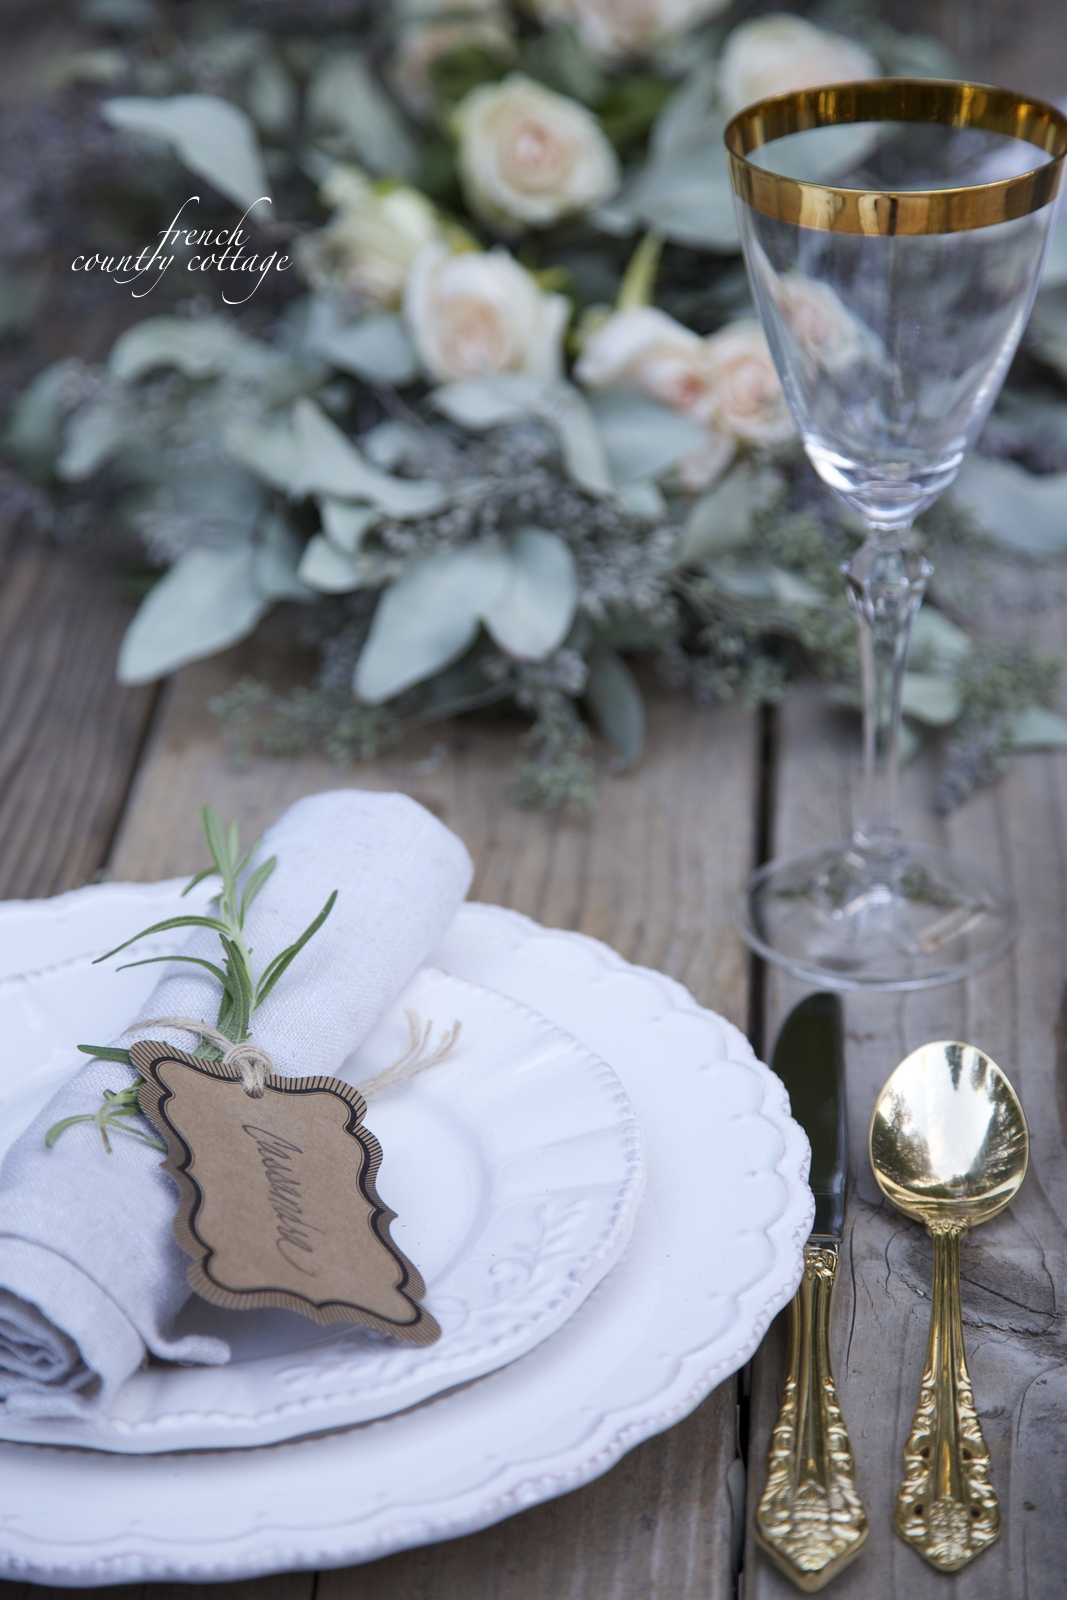 tablesetting & Simple Elegant Thanksgiving Table - FRENCH COUNTRY COTTAGE